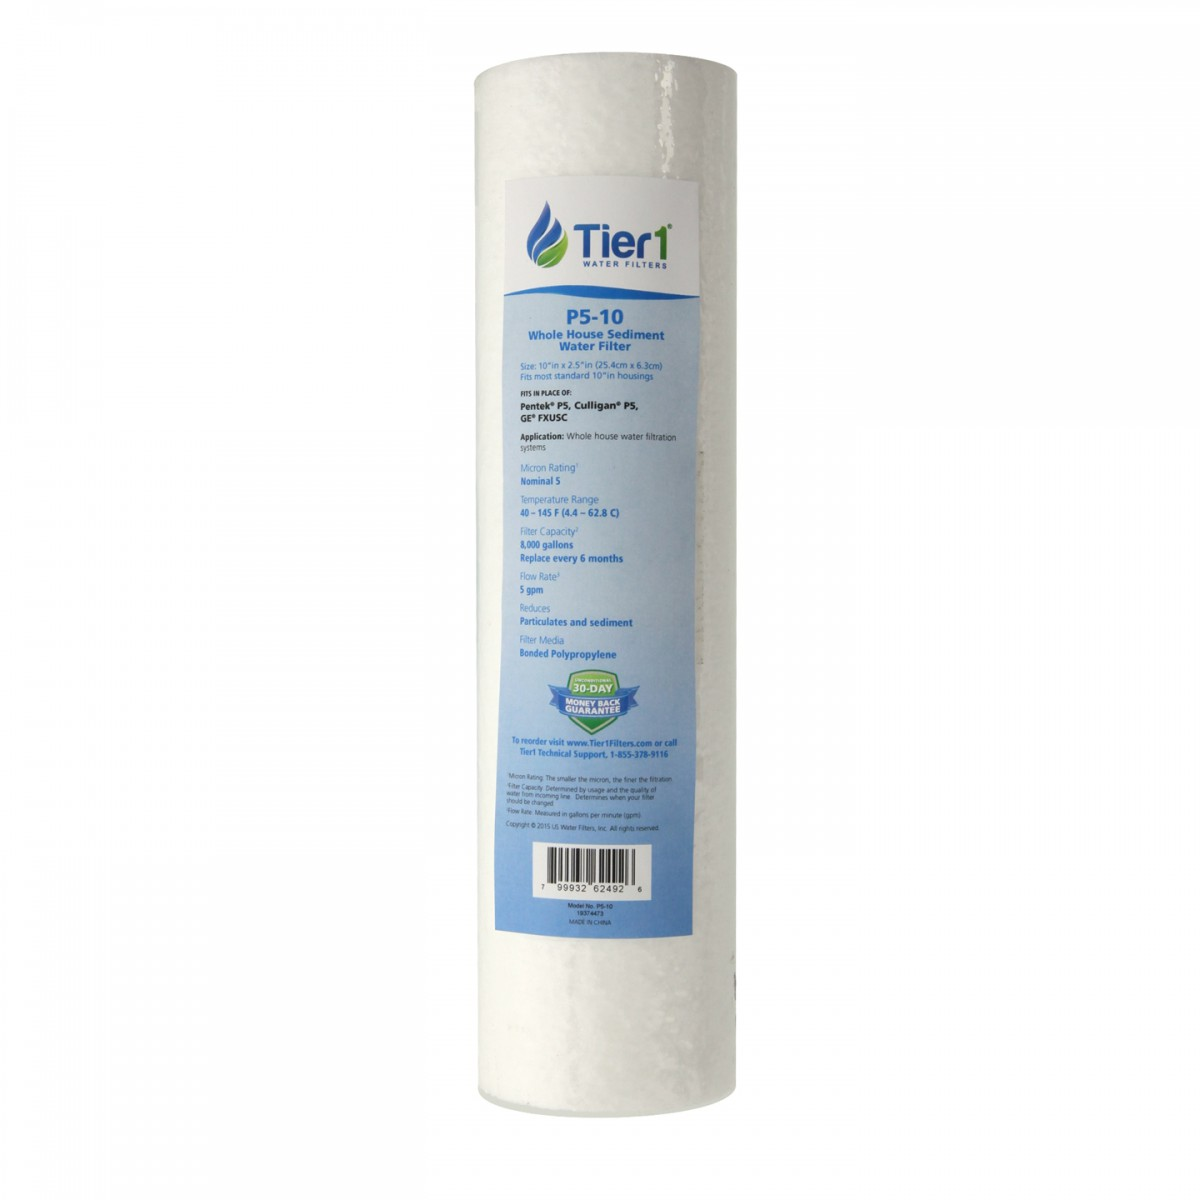 Whole House Sediment Water Filter Tier1 P5 10 Sediment Water Filter